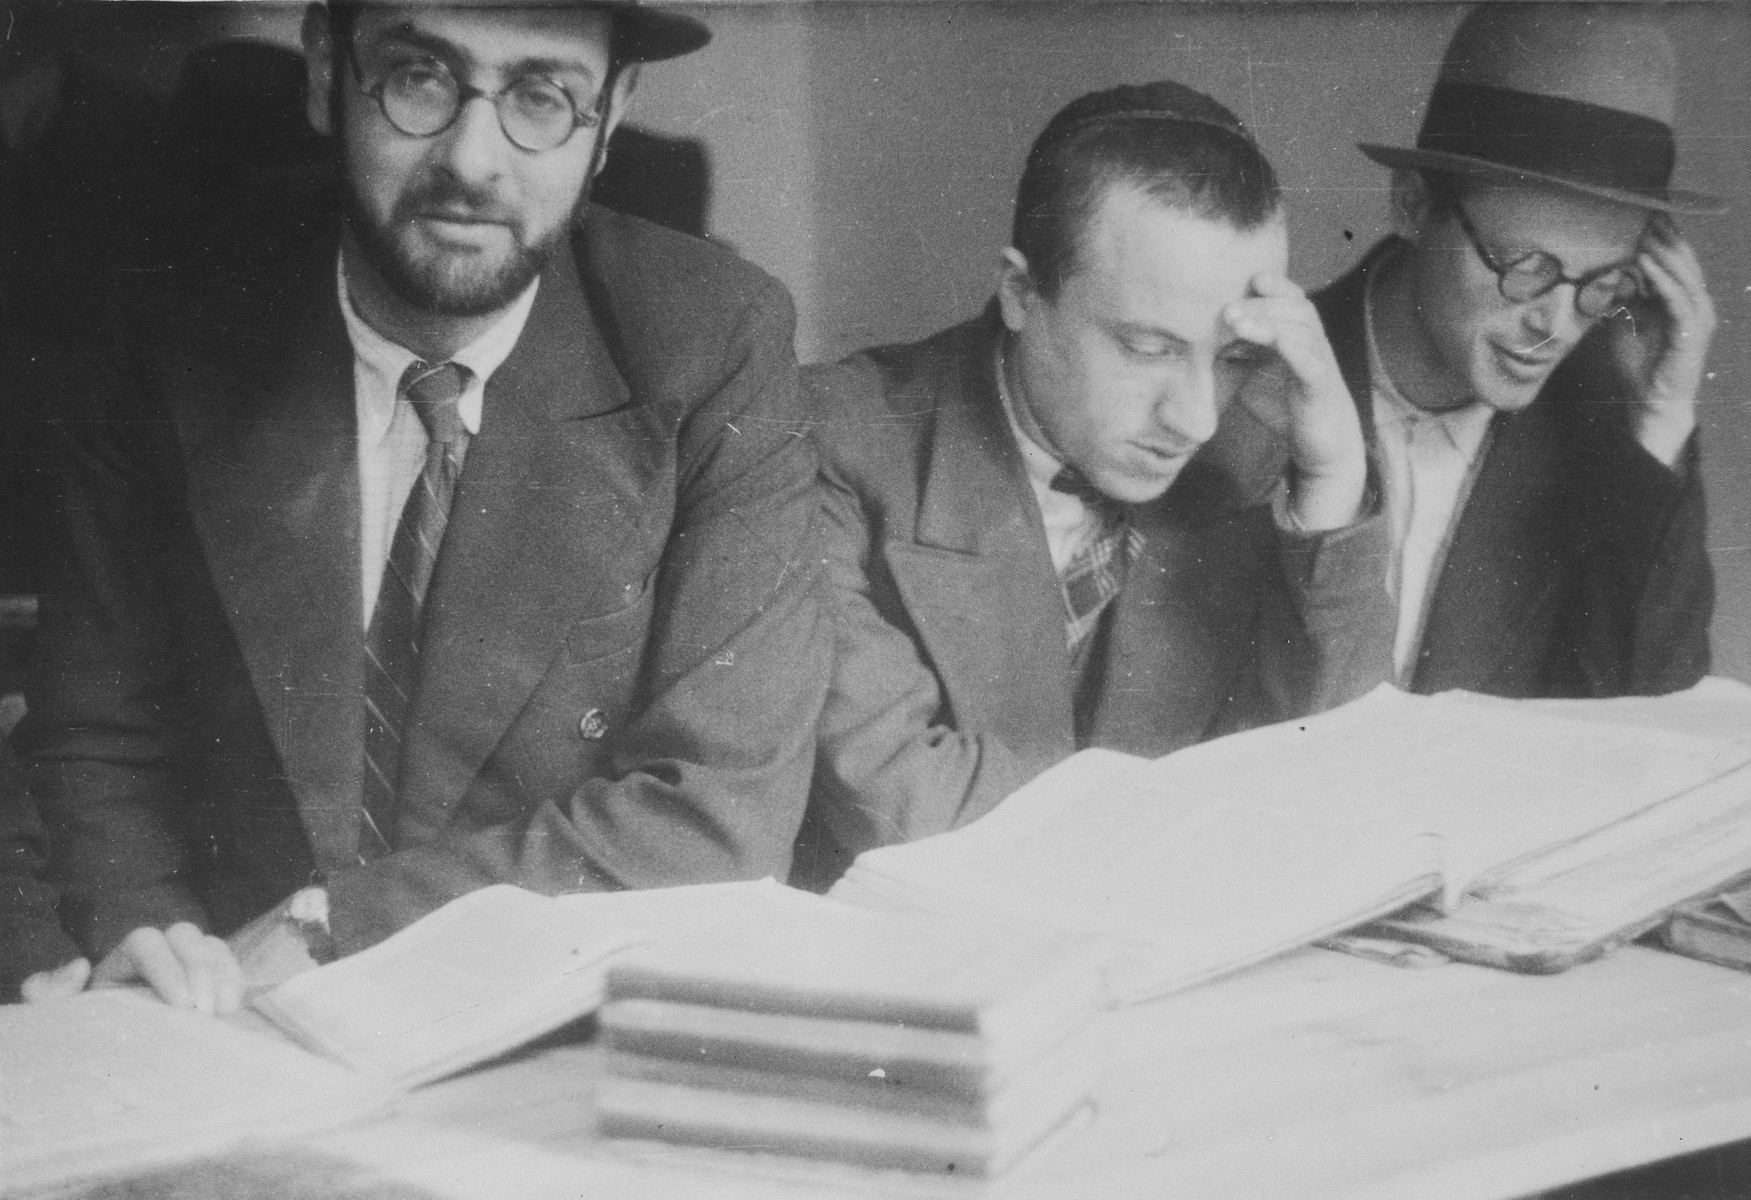 Students at the Mir Yeshiva in Kobe study around a table.  Elchanan Yosef Hertzman is on the right and Boruch Yaakov Alter is in the middle.